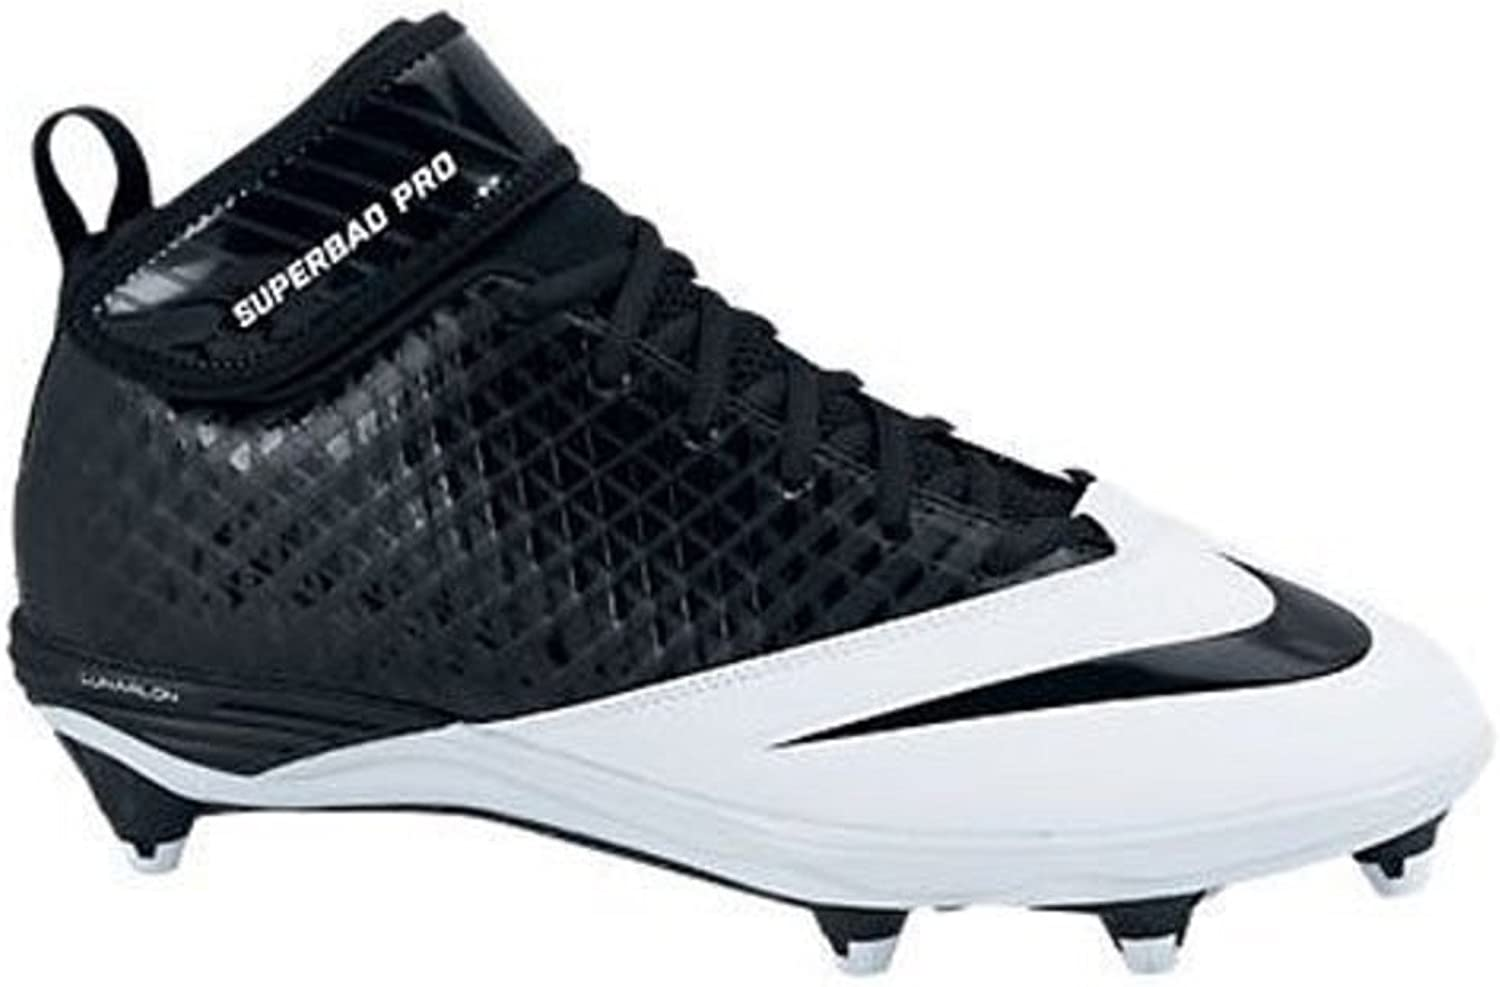 Nike Lunar Super Bad Pro D Men's Football Cleats Black